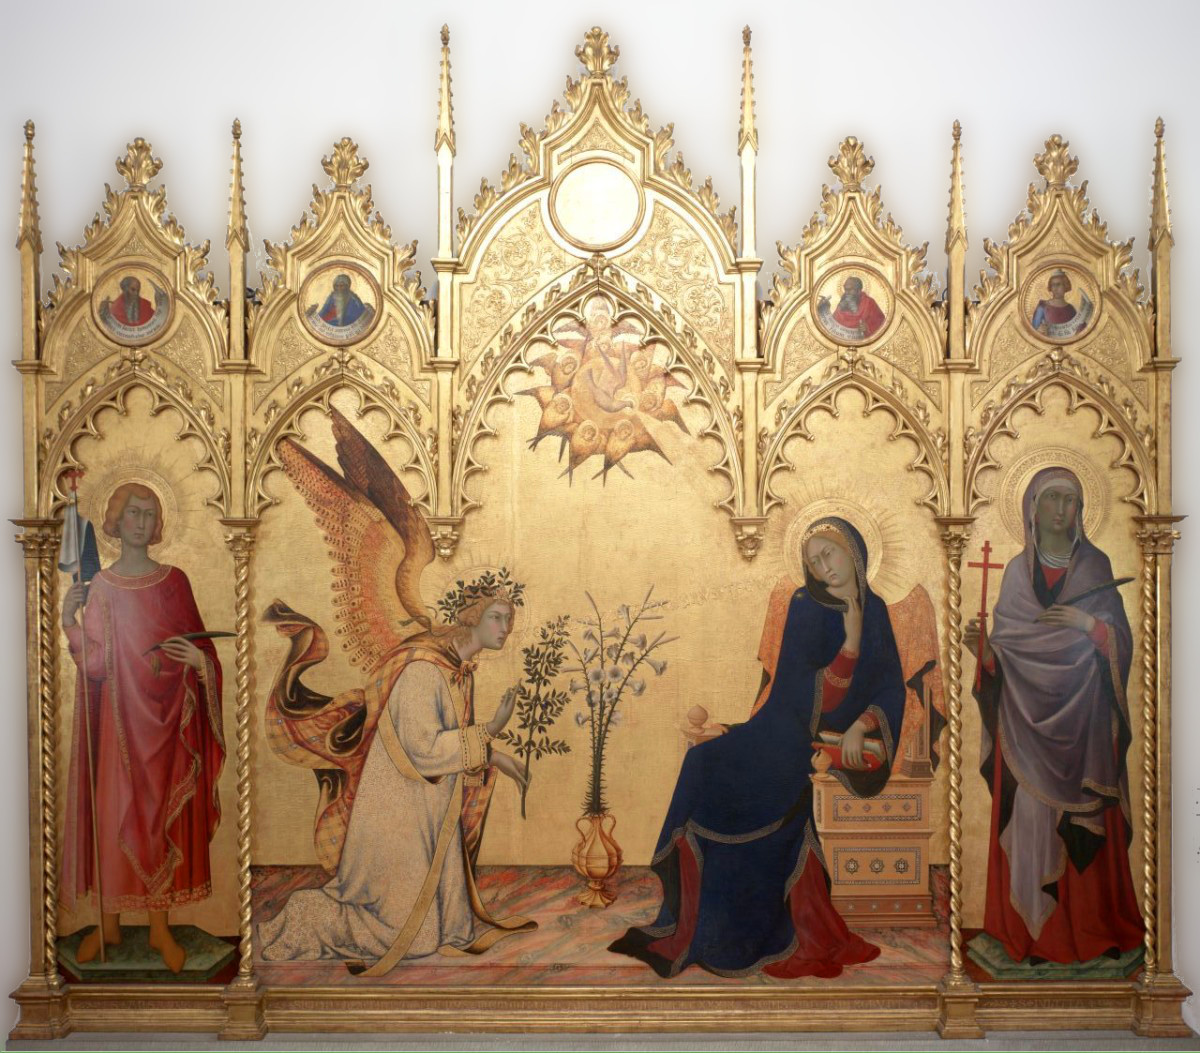 Simone Martini: The Annunciation